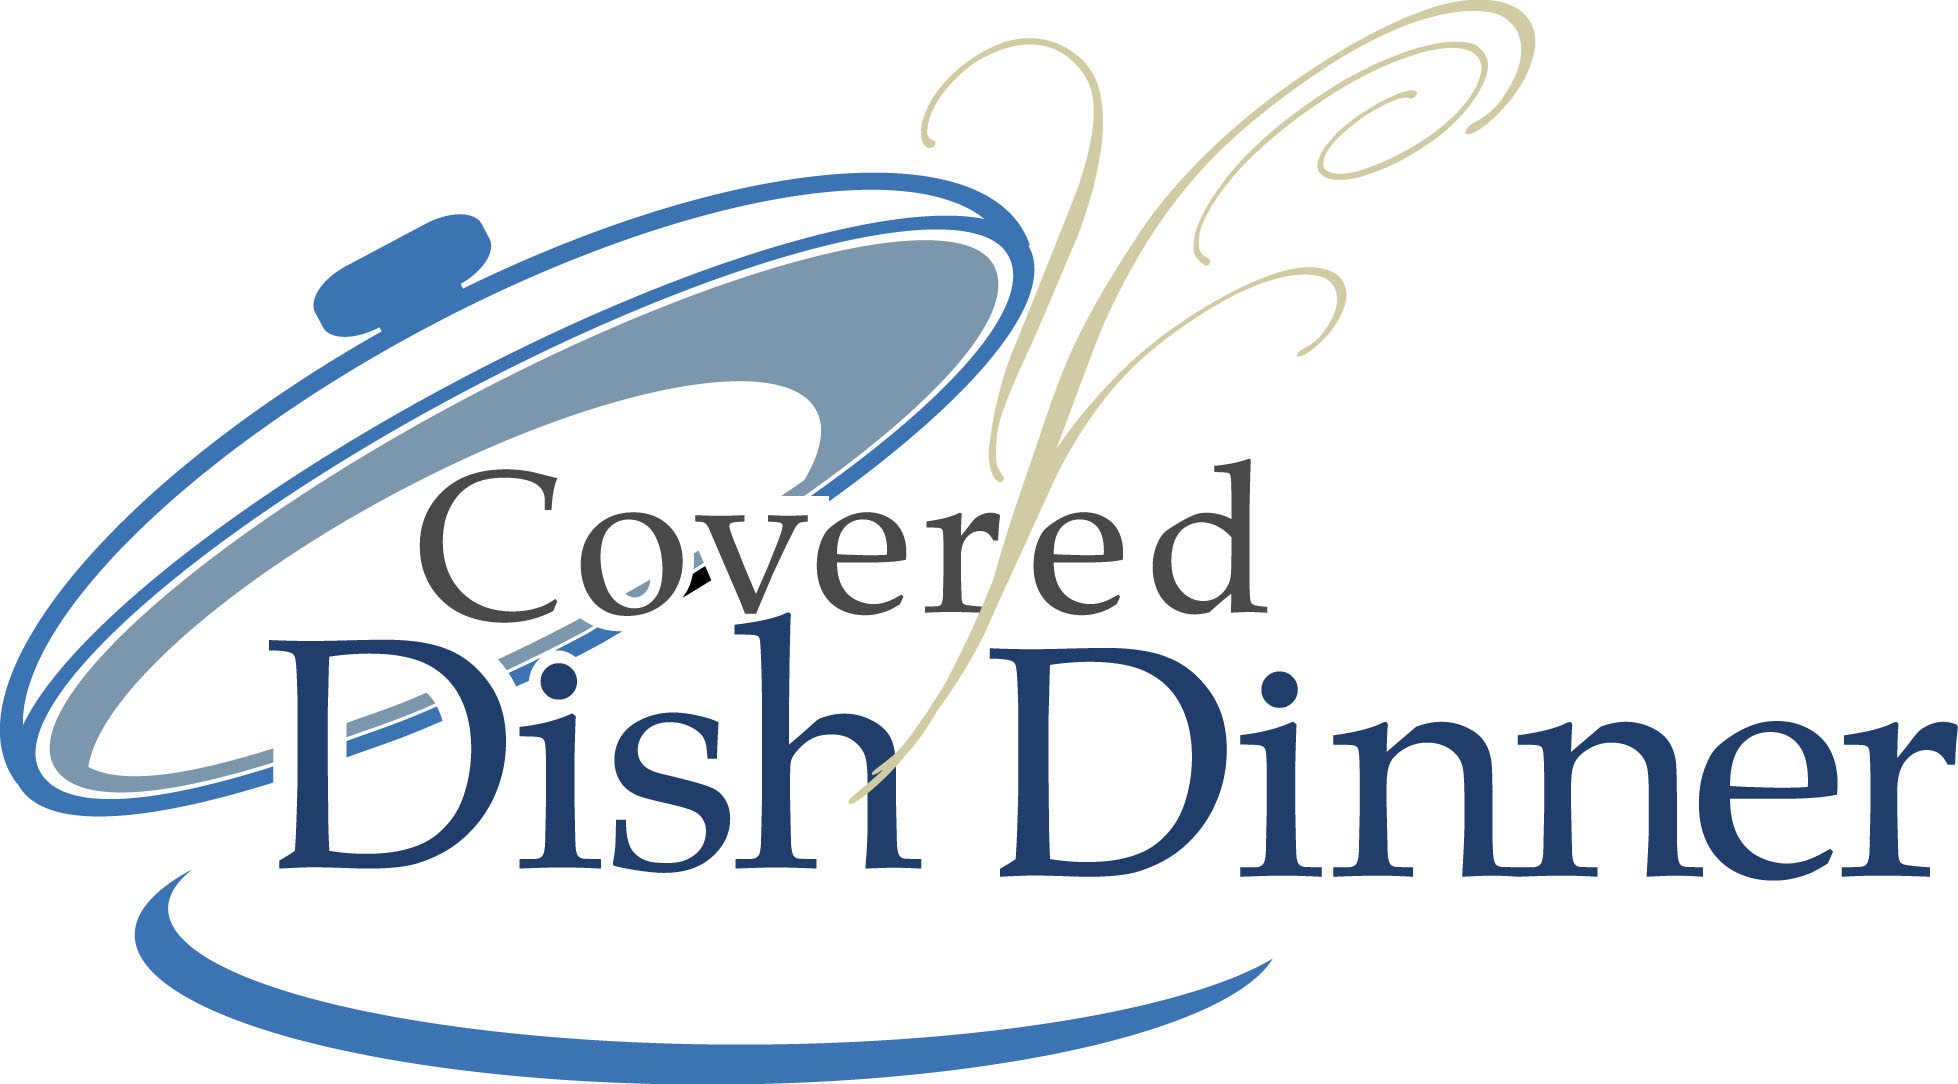 Fellowship meal free download. Luncheon clipart covered dish